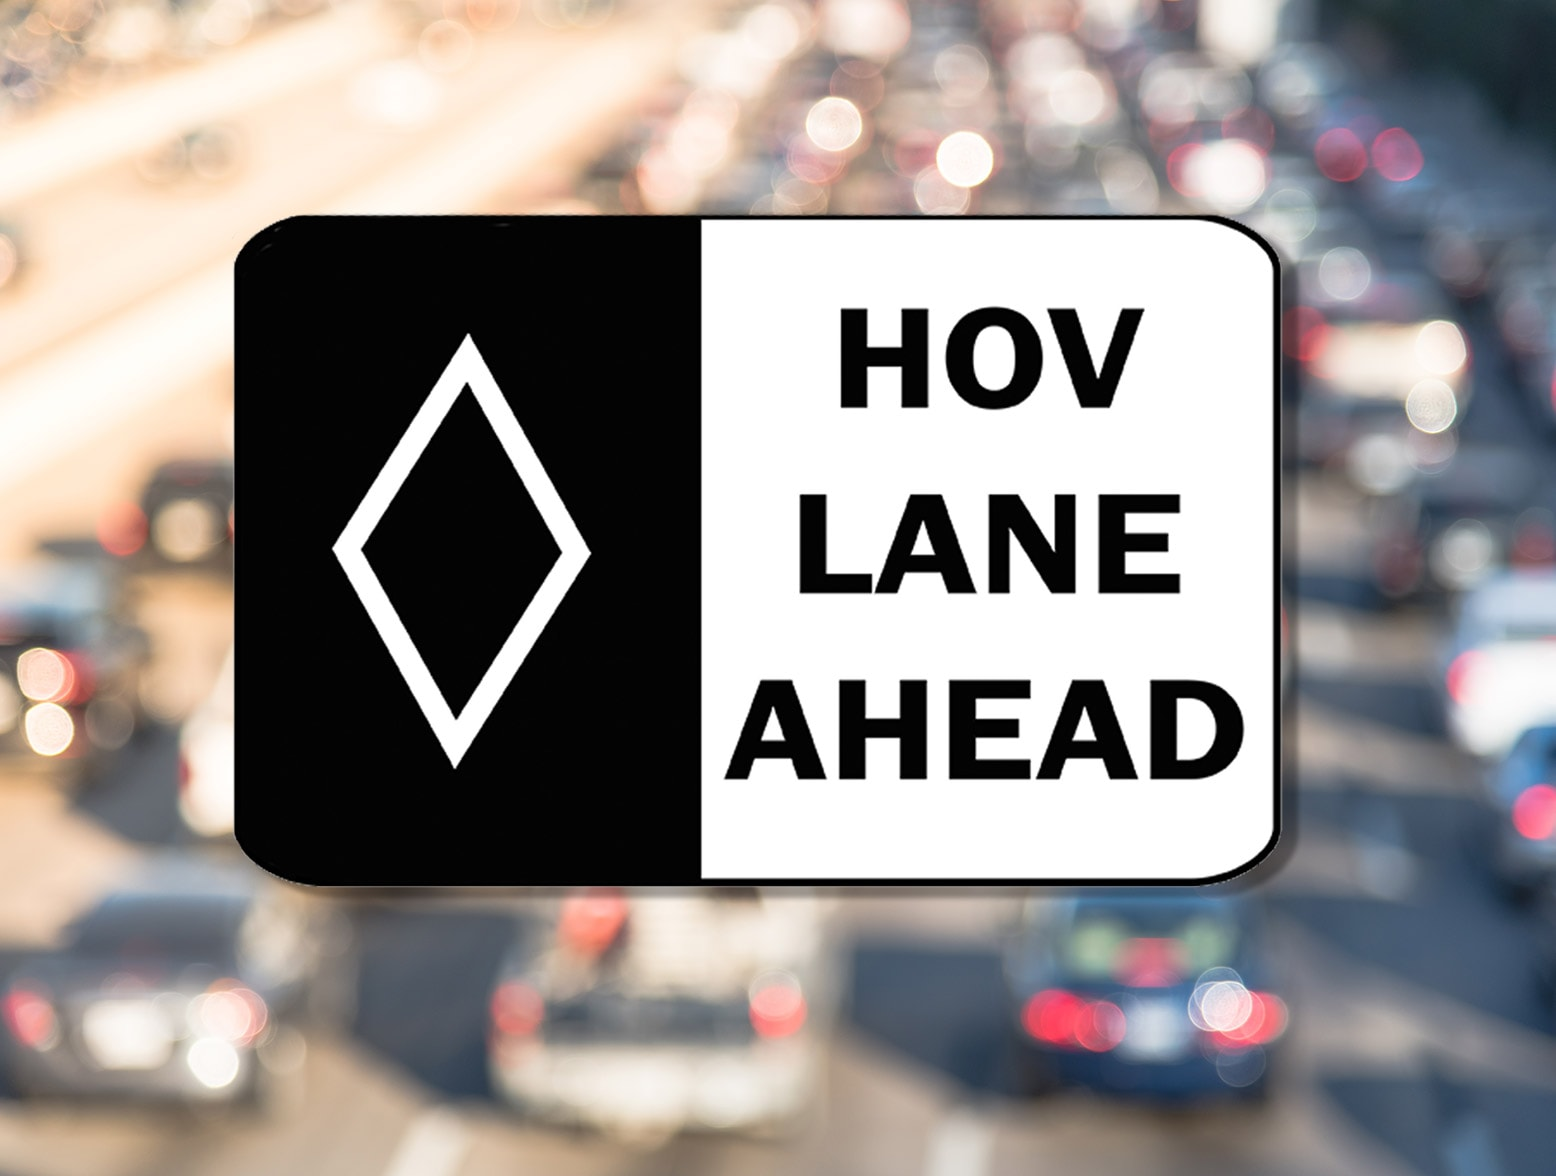 Hov Lane Rule 1 All People Must Be Alive